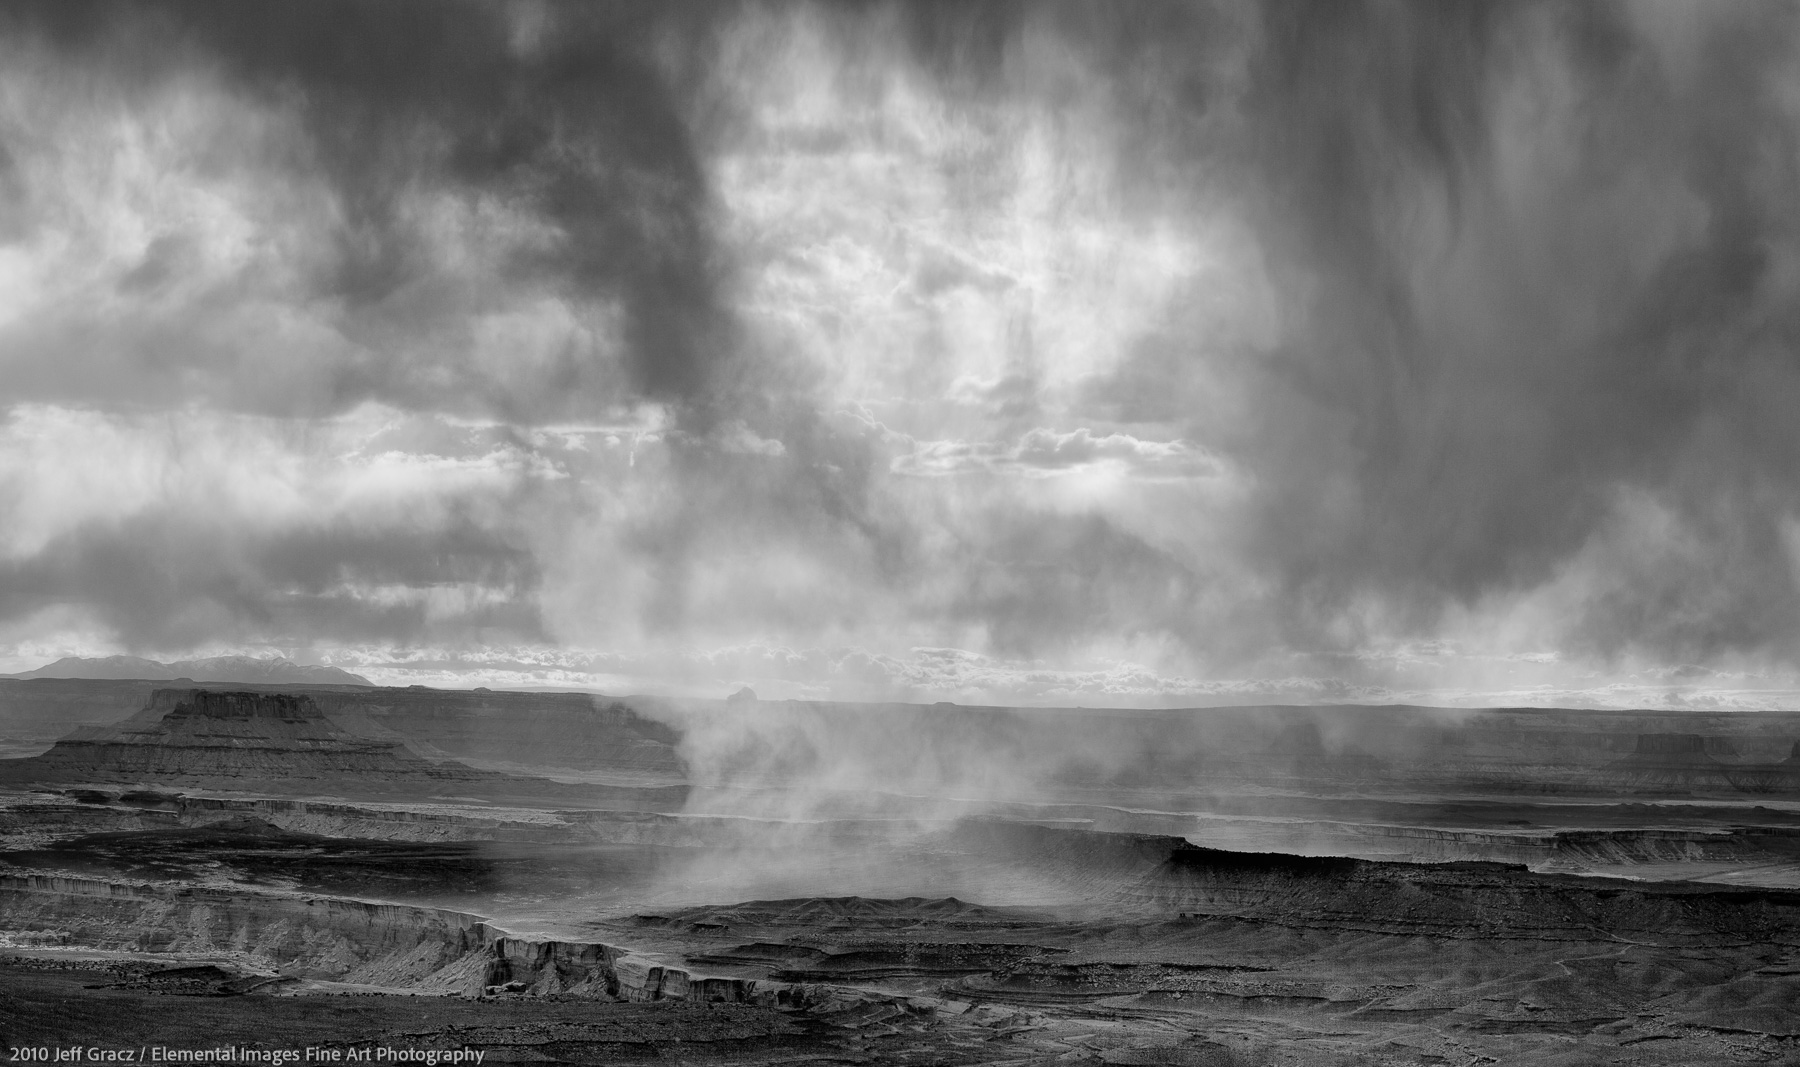 Snow Shower over Canyonlands | Canyonlands National Park | UT | USA - © 2010 Jeff Gracz / Elemental Images Fine Art Photography - All Rights Reserved Worldwide